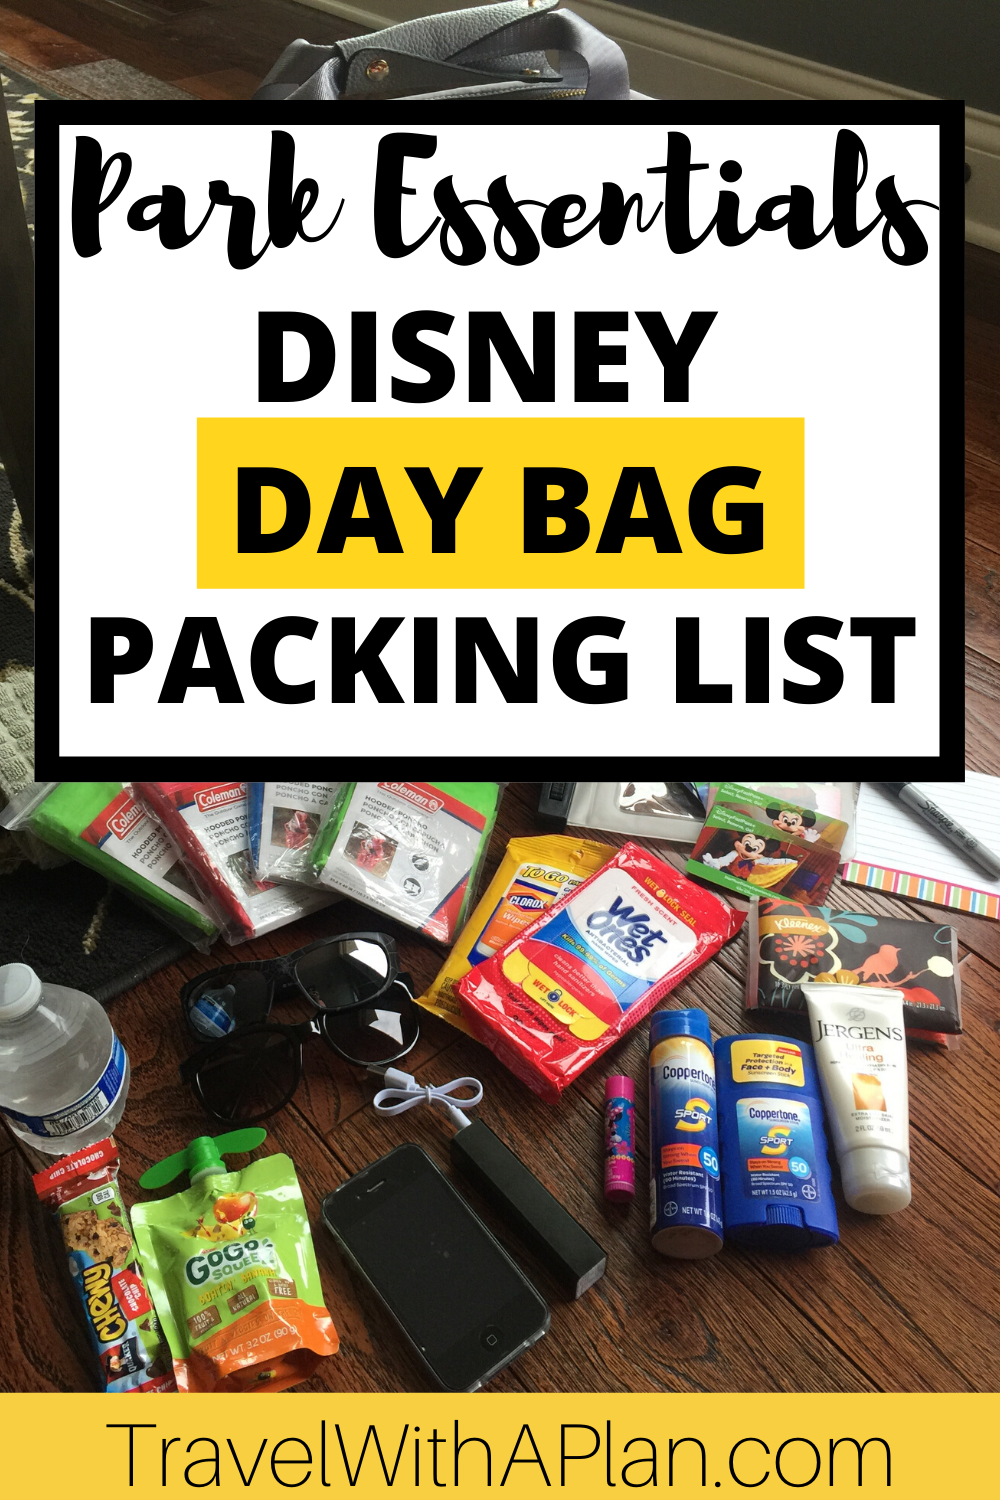 Get our complete list of Disney World essentials that NEED to go in your Disney park bag!  Complete with a Disney Day Bag Printable Checklist, we'll make sure you don't forget anything needed for a long day of touring Disney!  #Disneydaybag #Disneydaybagpackinglist #Disneydaybagchecklist #Disneydaybaglist #Disneydaybagbackpacks #Disneydaybagforkids #DisneyWorlddaybag